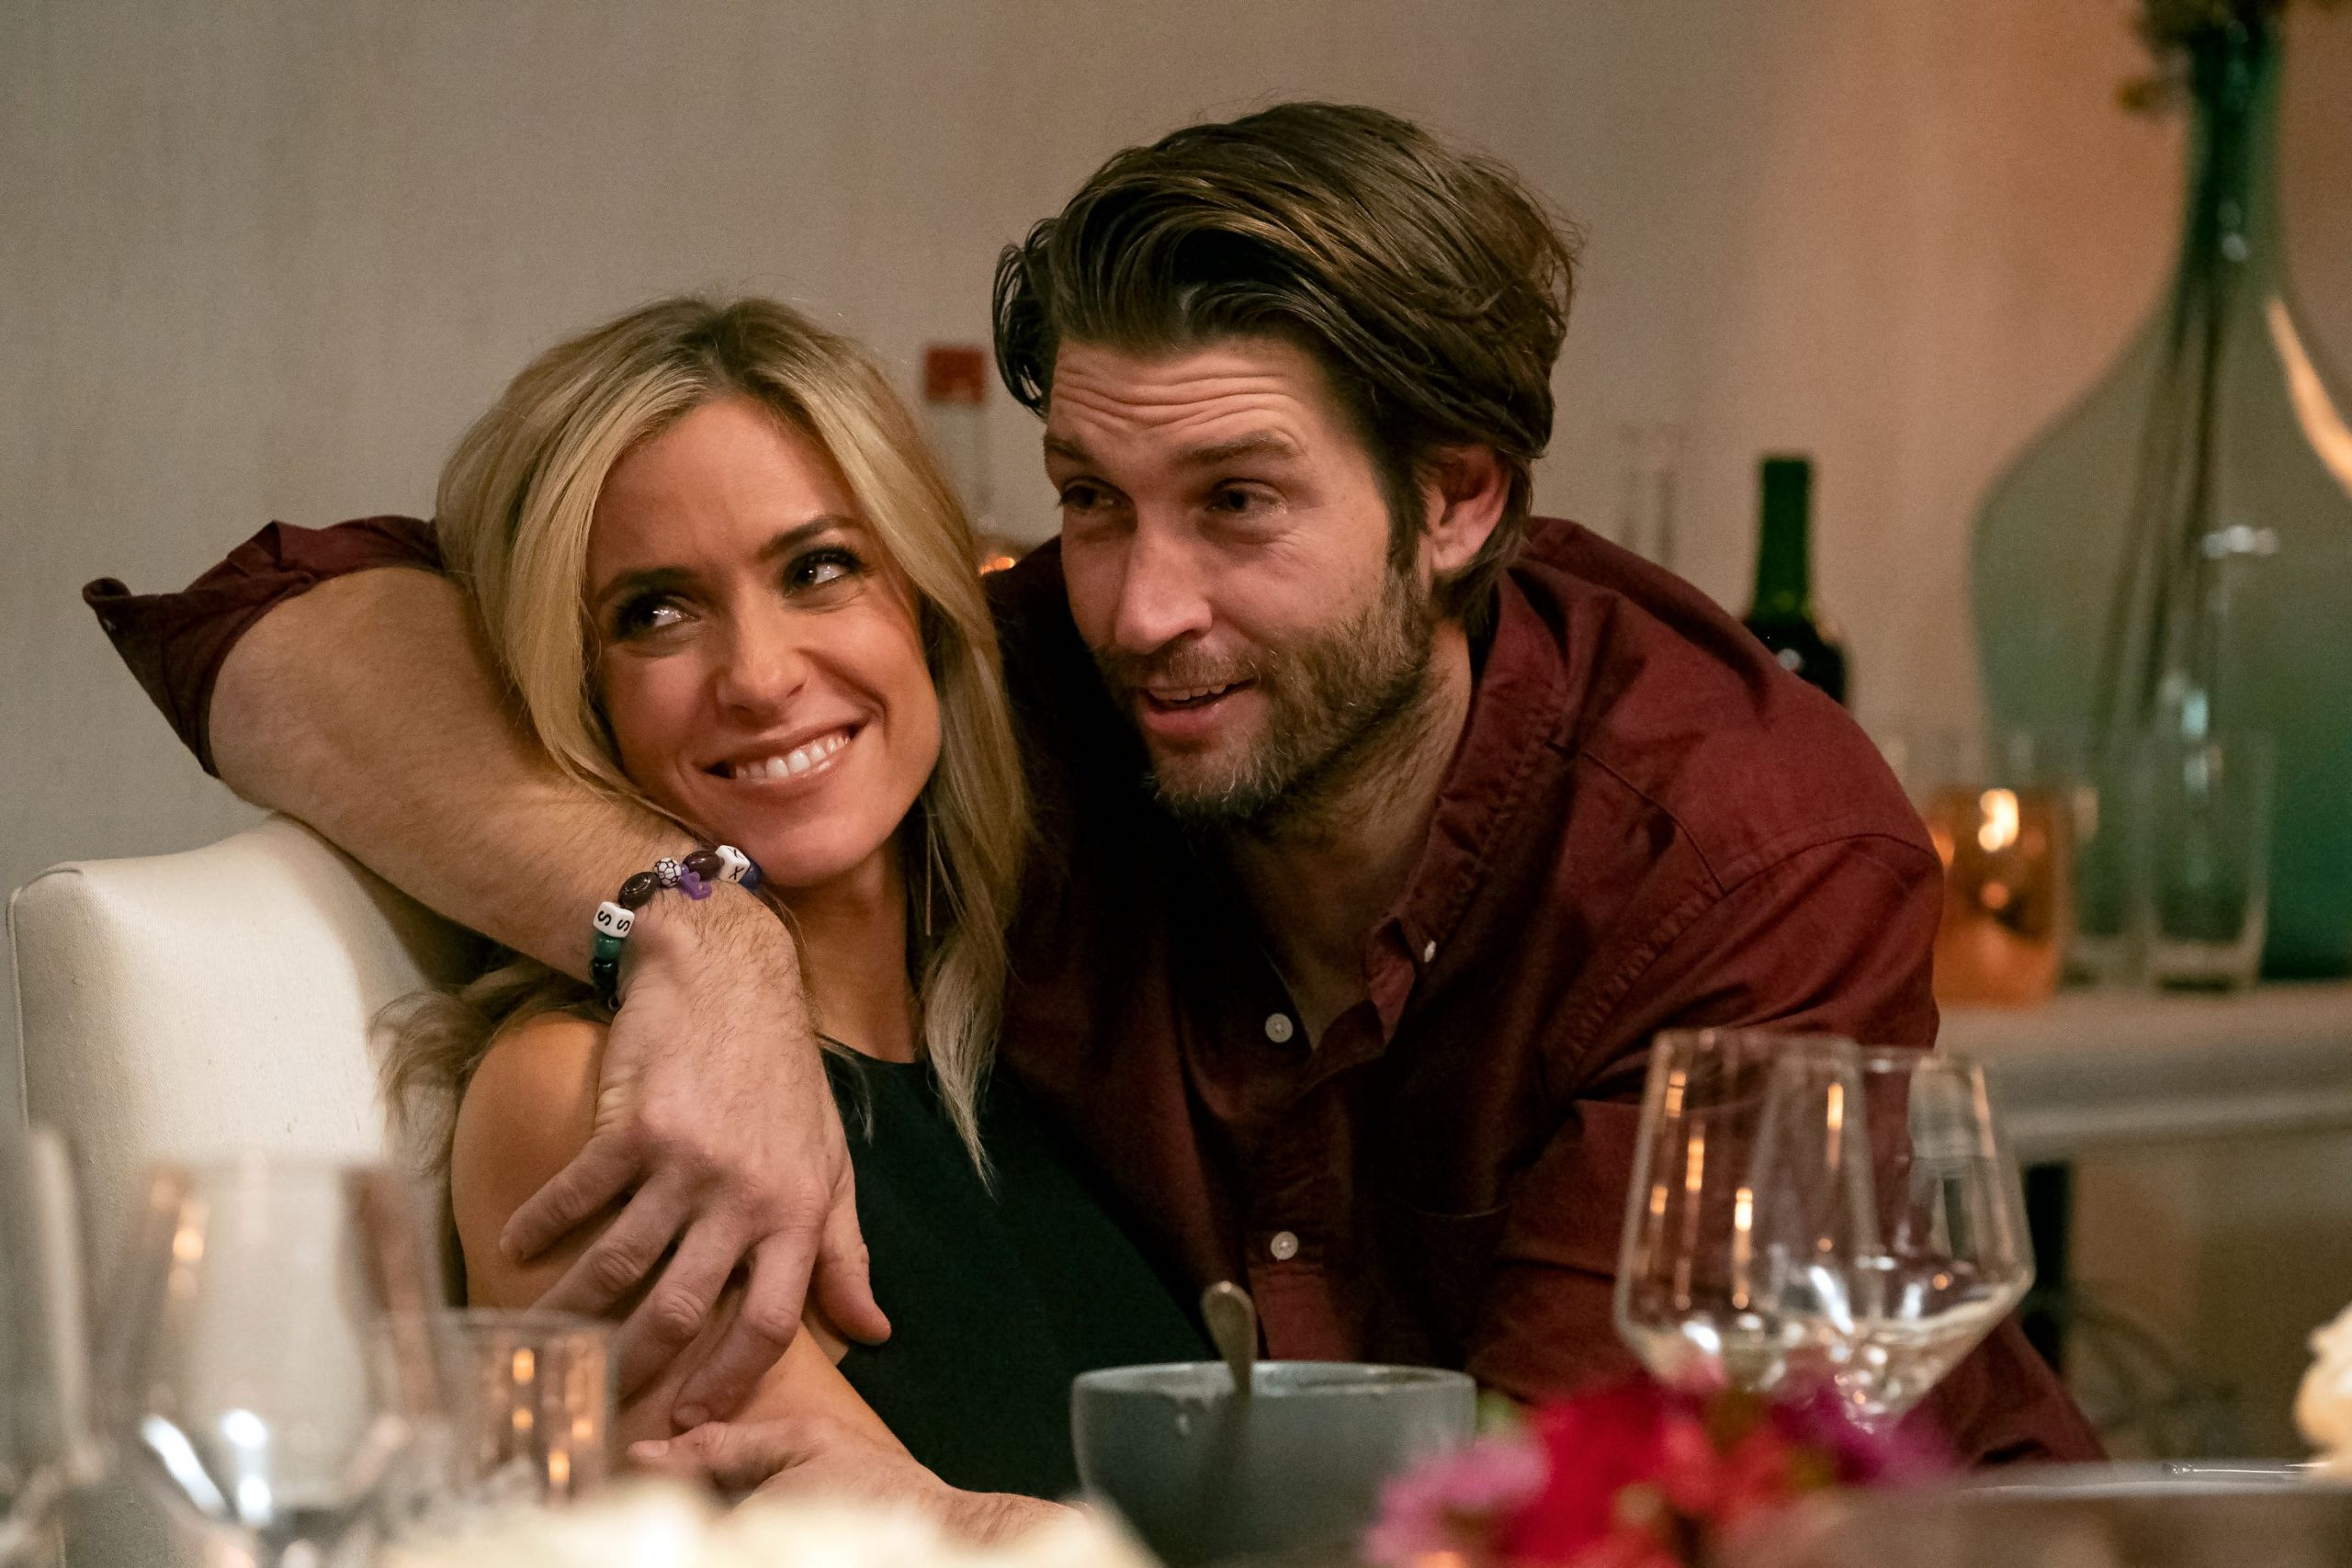 Kristin Cavallari, Jay Cutler, Mother's Day, Very Cavallari, Kristin Cavallari Divorce, Instagram, Mother's Day